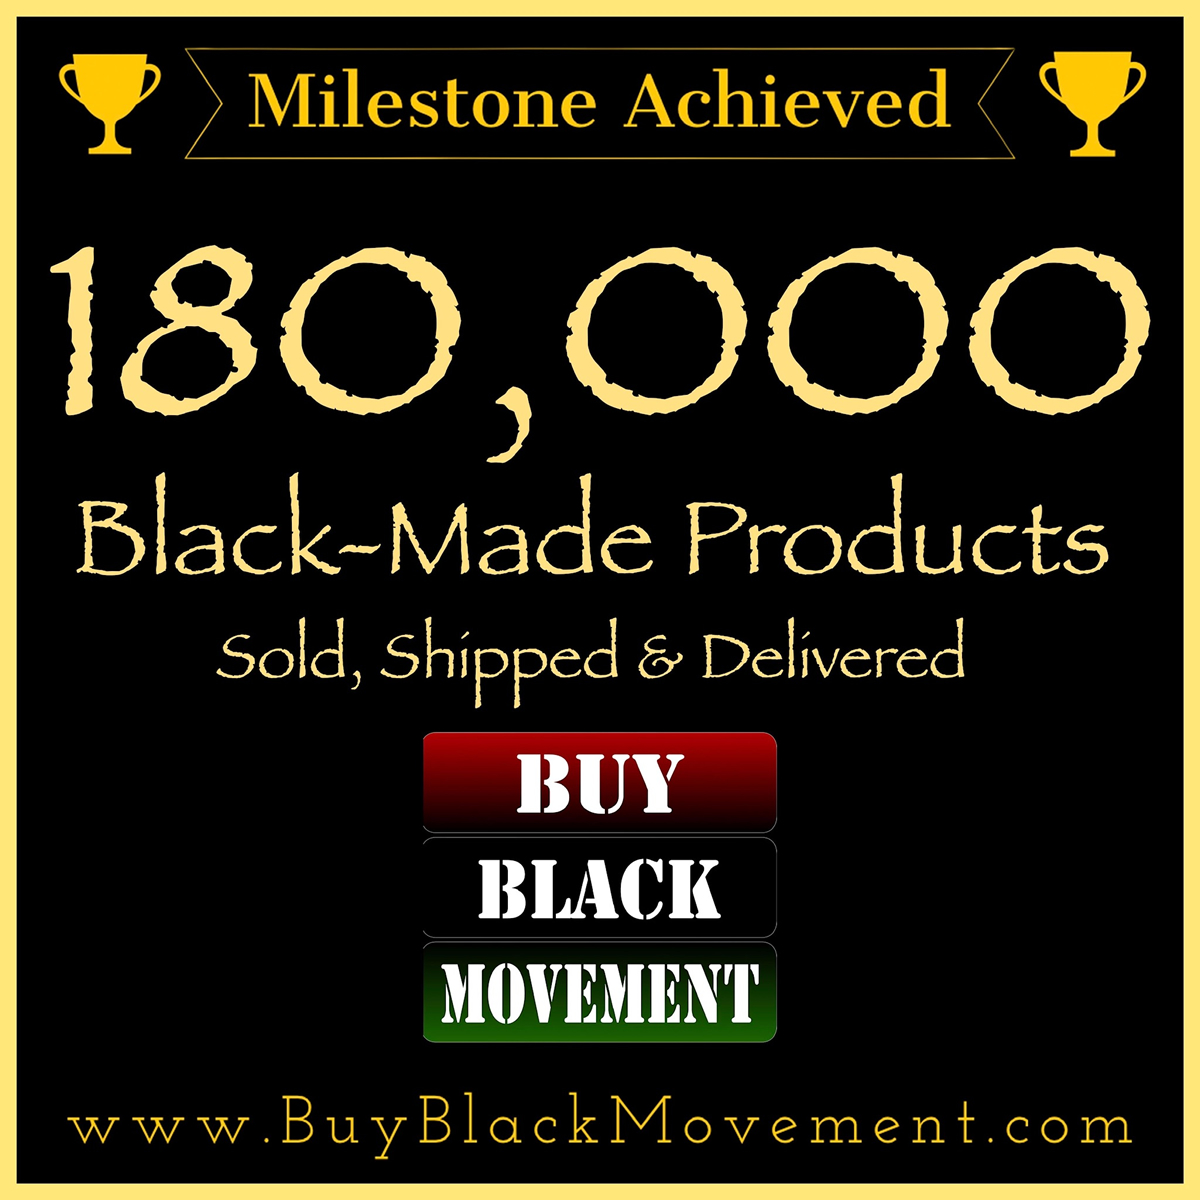 180,000 Products Sold